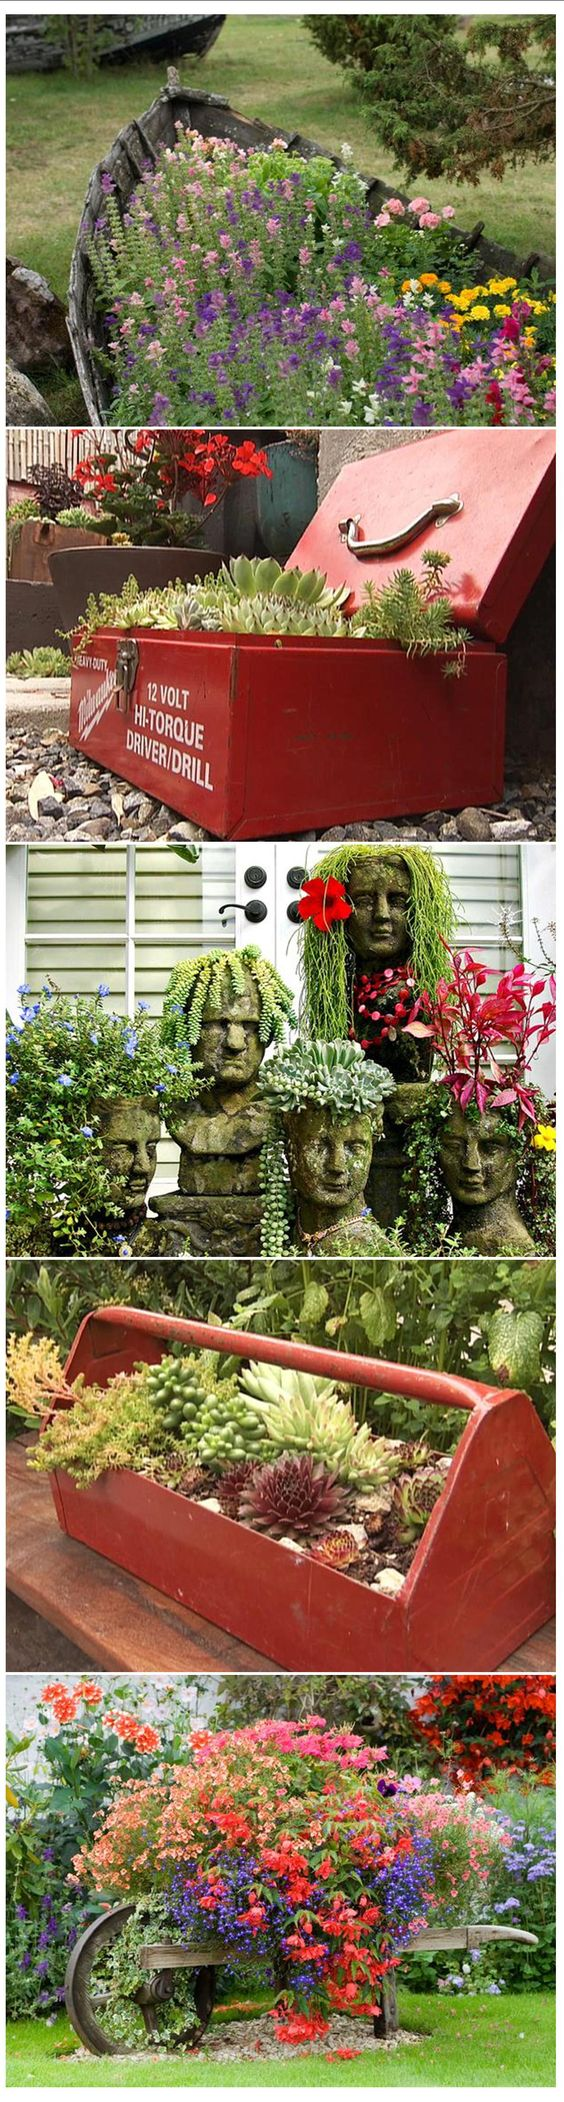 13 unusual and upcycled container gardens gardens the head and tool box - Unique container gardening ideas ...